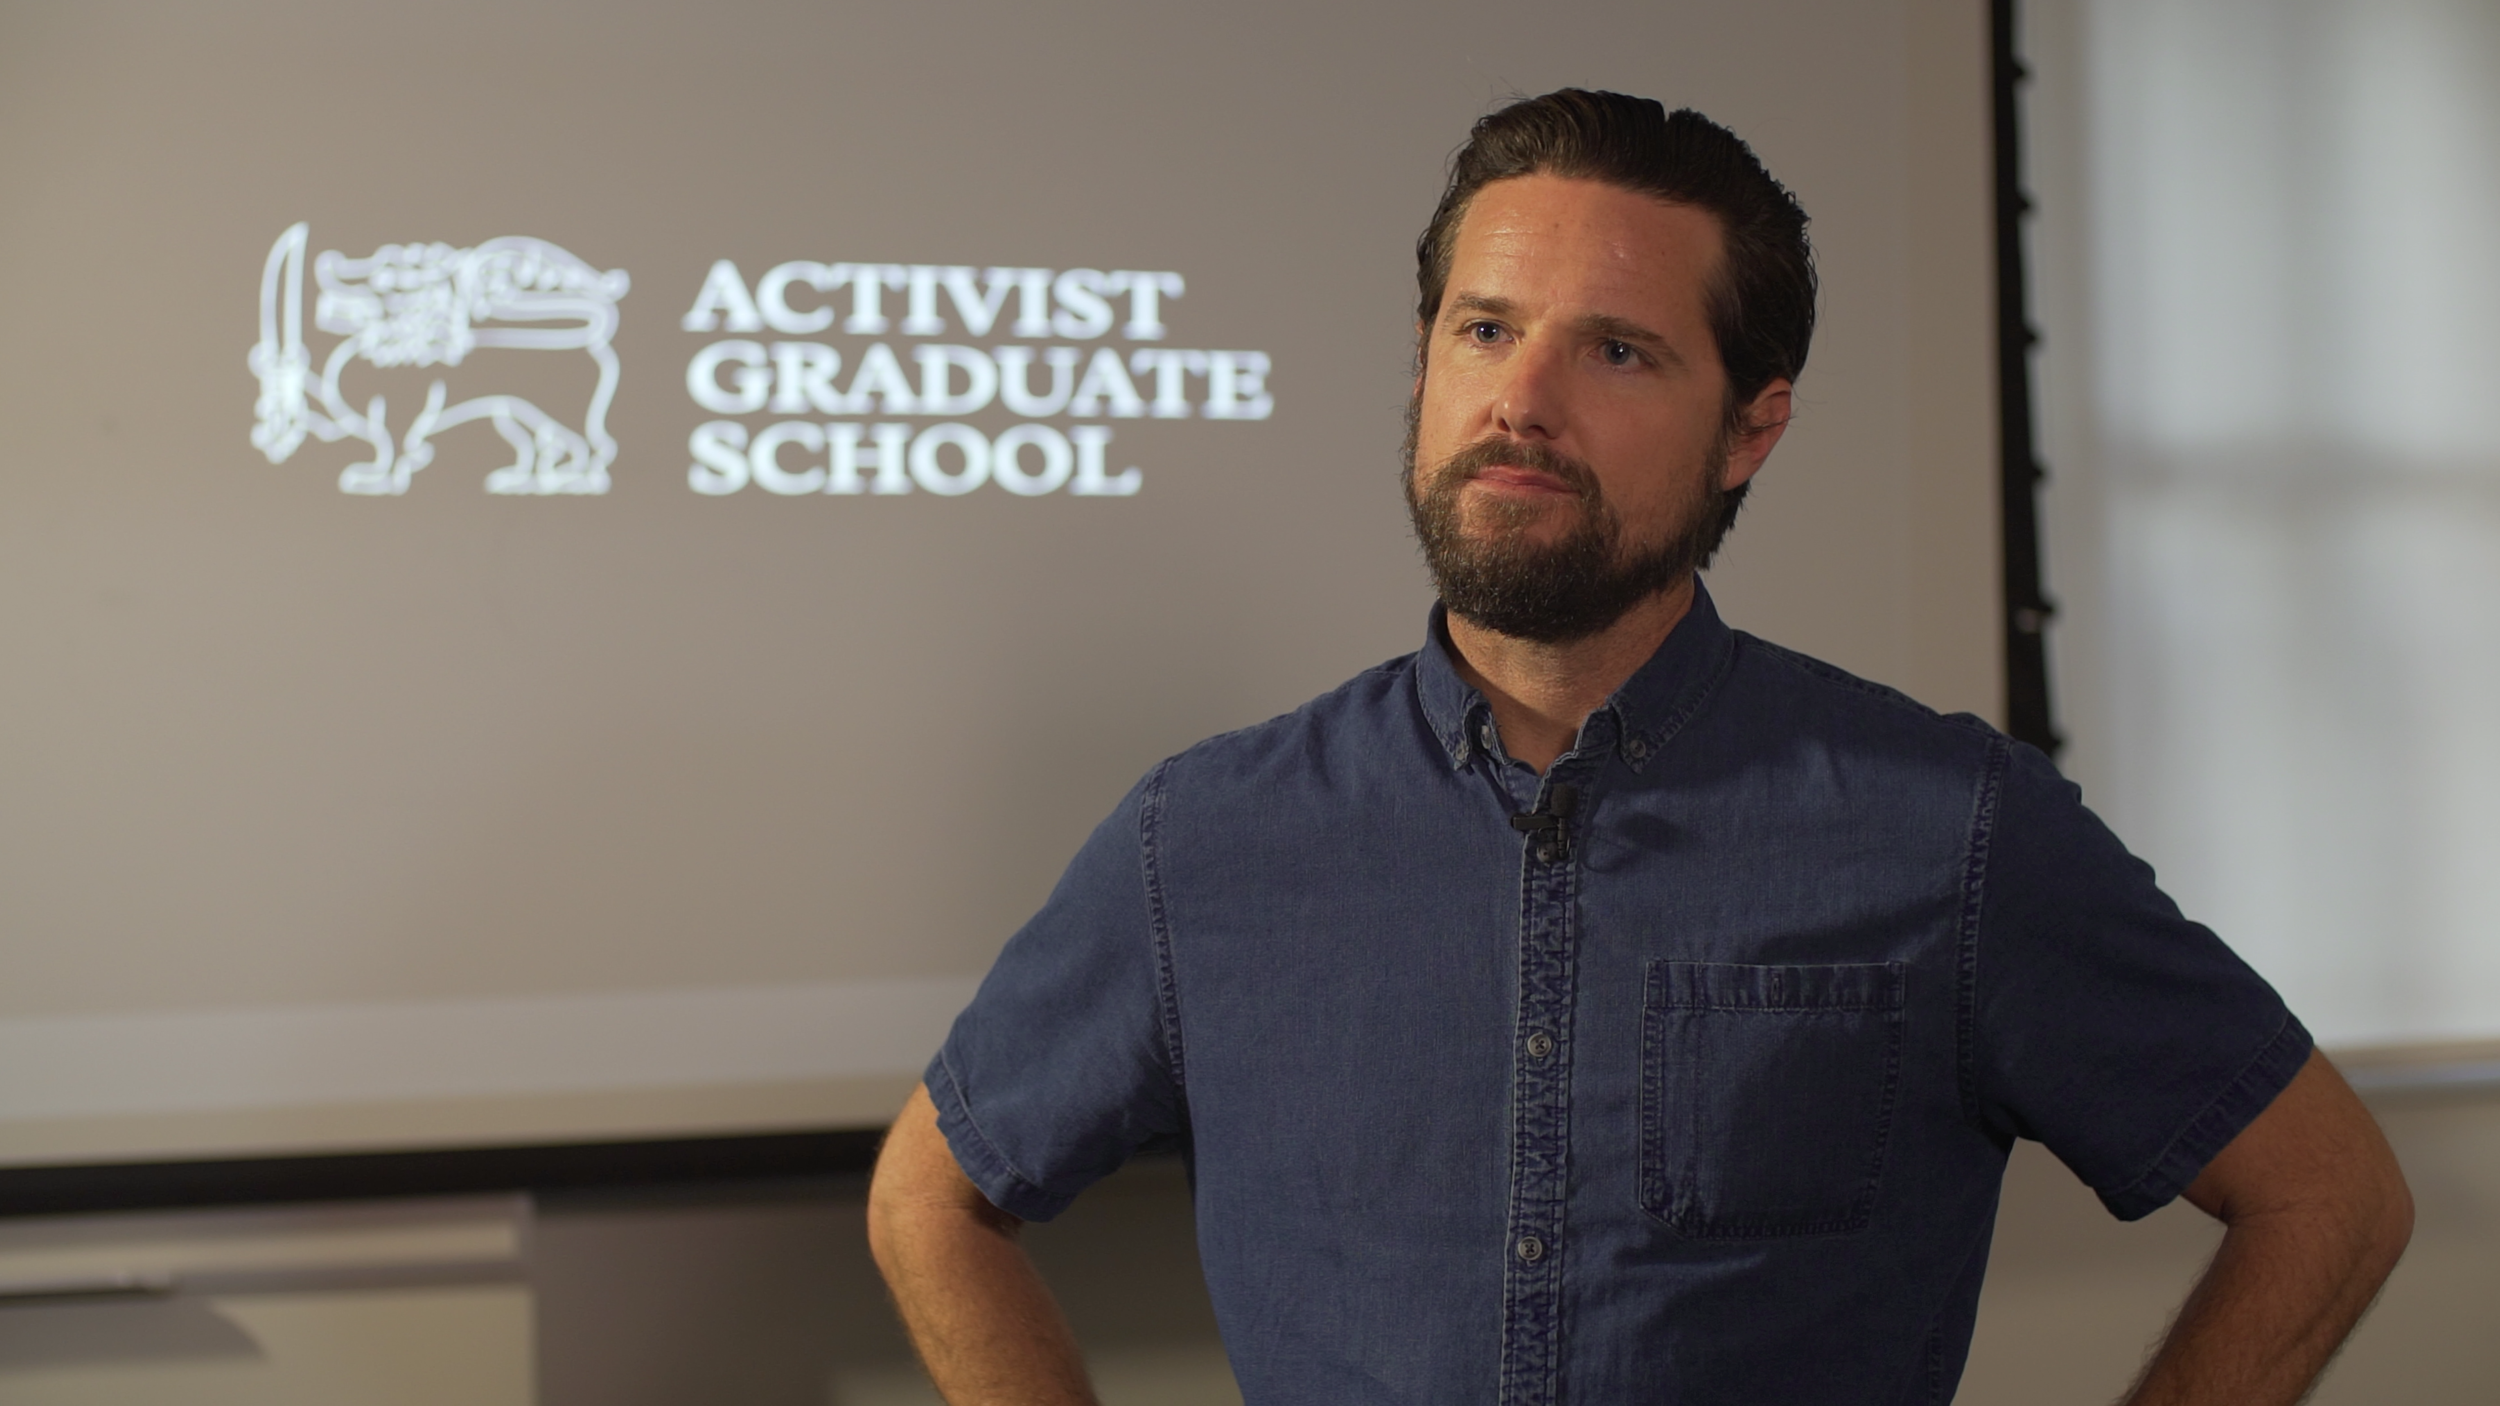 """Symposium Information - REGISTRATION CLOSES:July 1, 2019ONLINE COURSE STARTS:July 8, 2019LENGTH: Symposium is 60 minutes. ALSO INCLUDES:Free access to course on """"Housing Justice Activism and Protest.""""PRICE: $150 USD"""